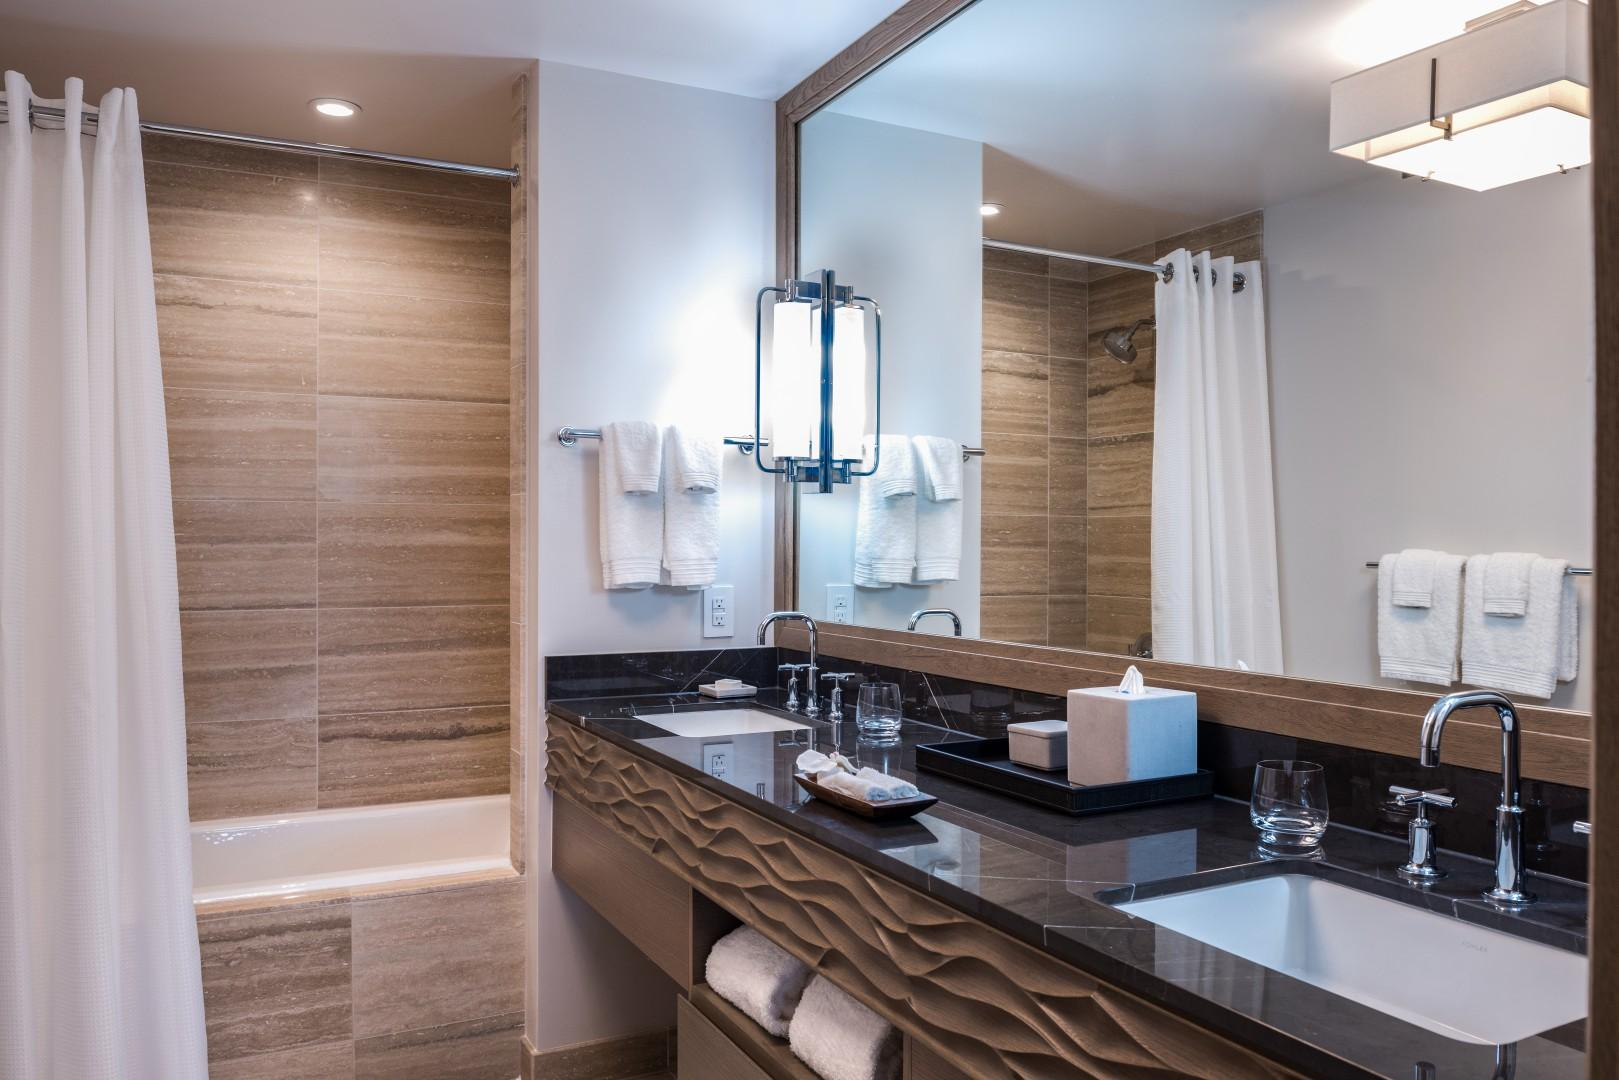 For total guest comfort and privacy, the third bedroom also has its own full bath.